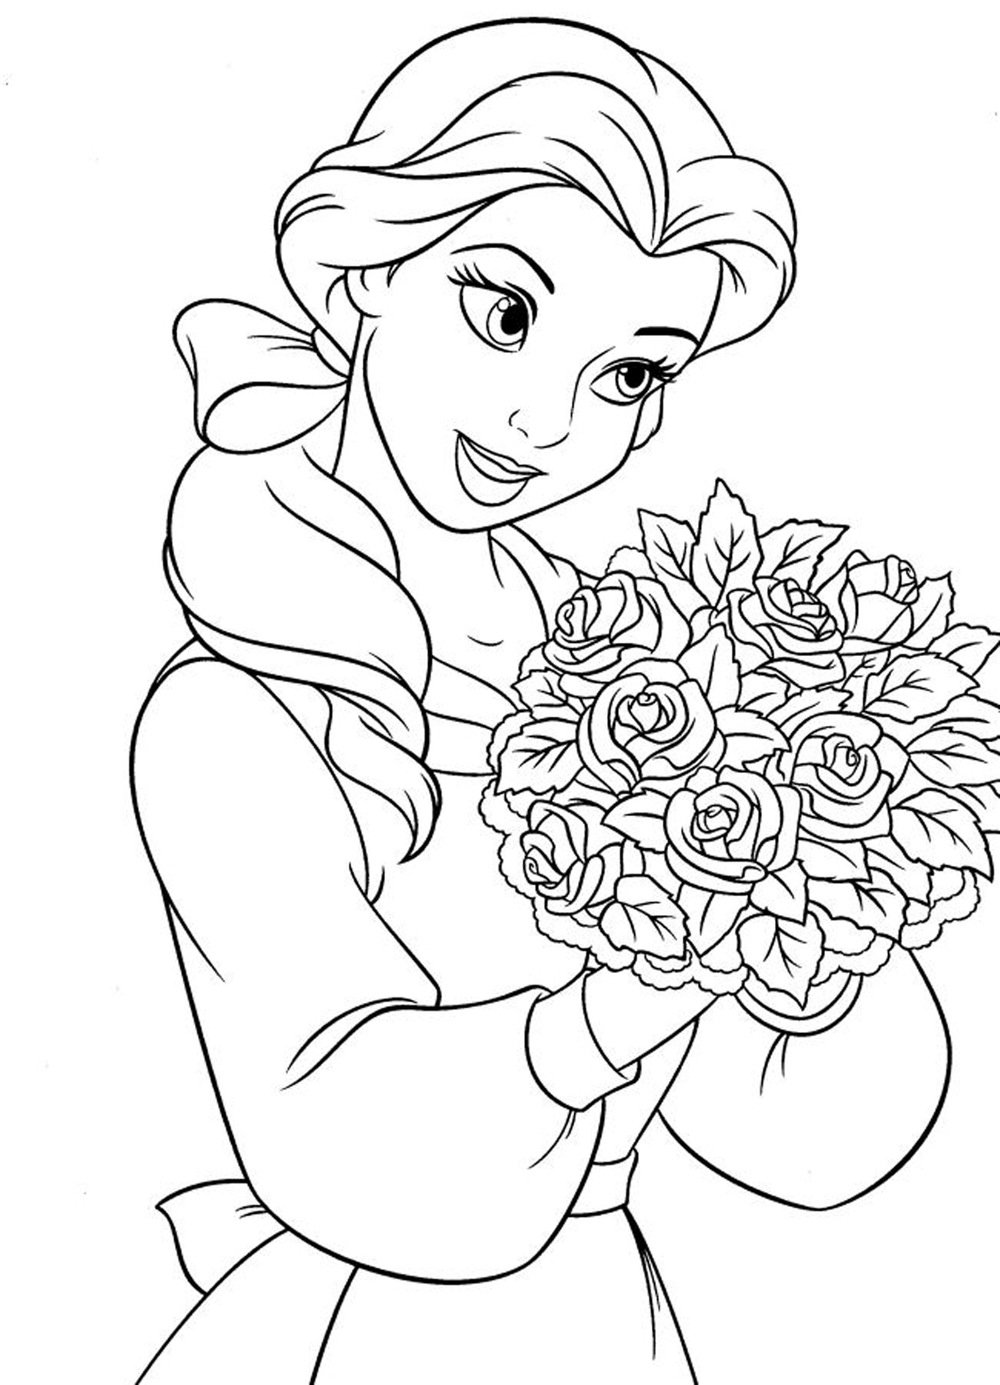 Astounding Design Disney Princesses Coloring Pages Disney Princess